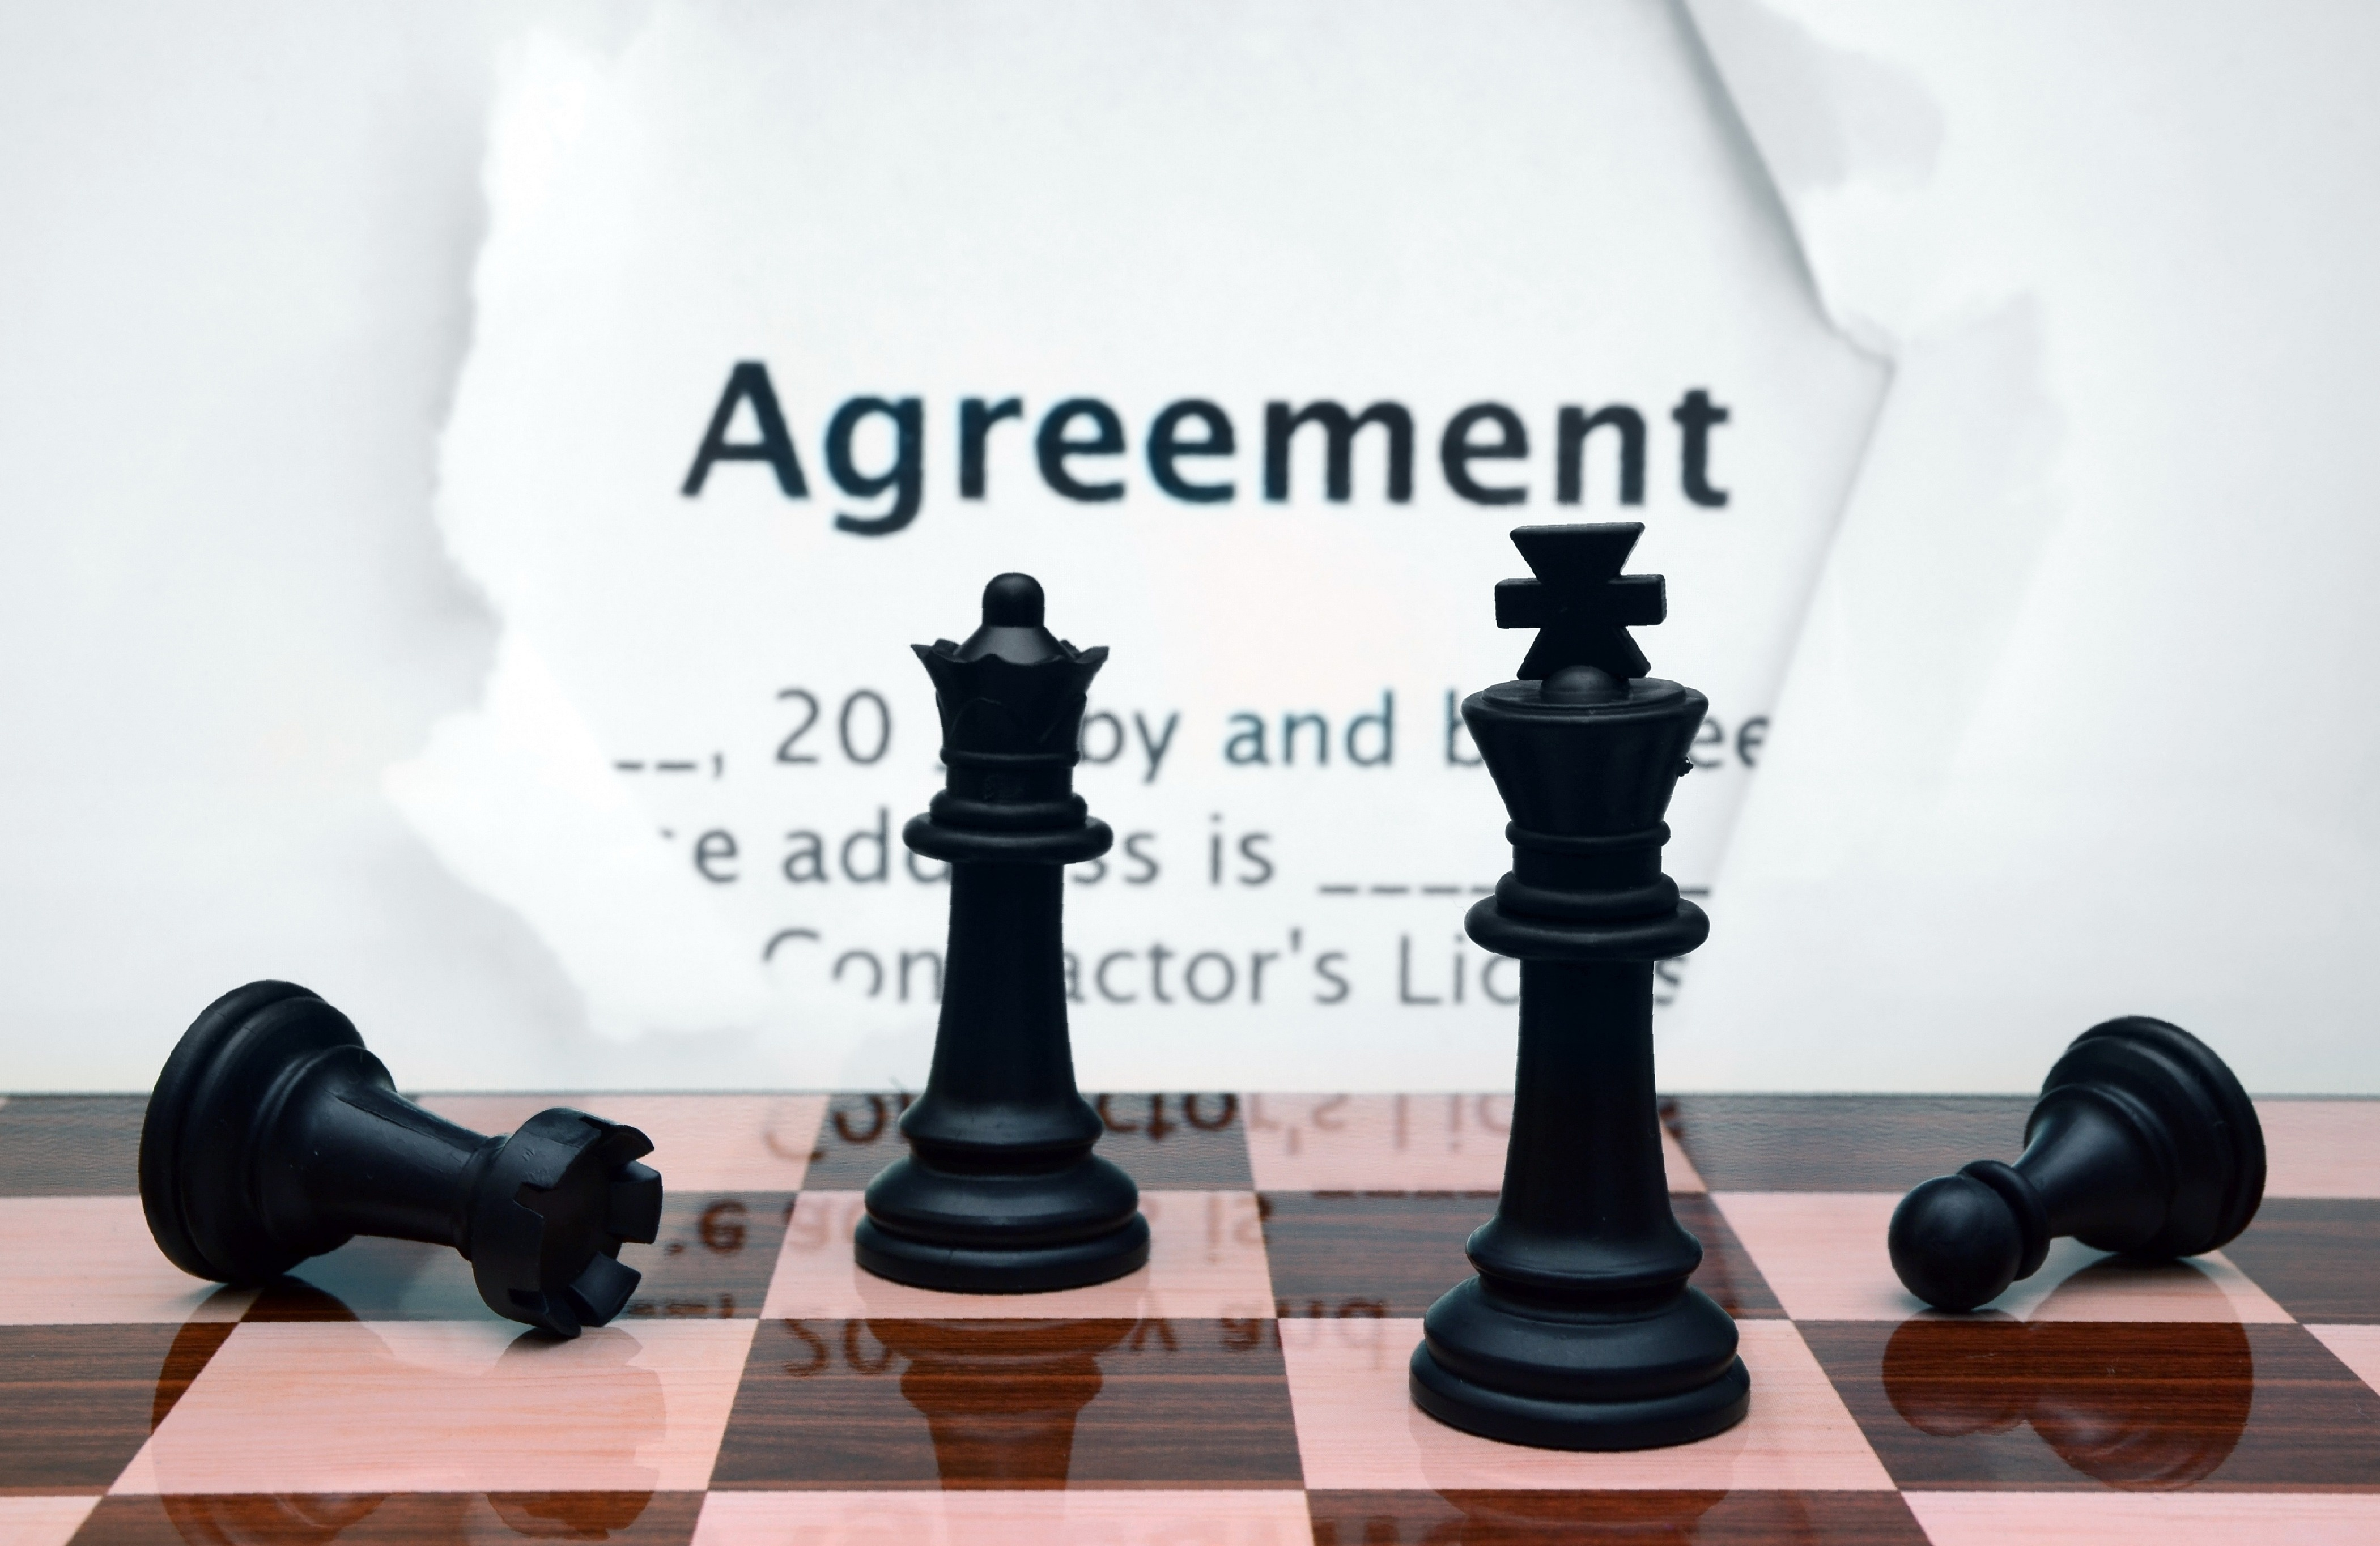 Picture of Chess Pieces in an Article About Subawards, Subrecipients and Grant Management